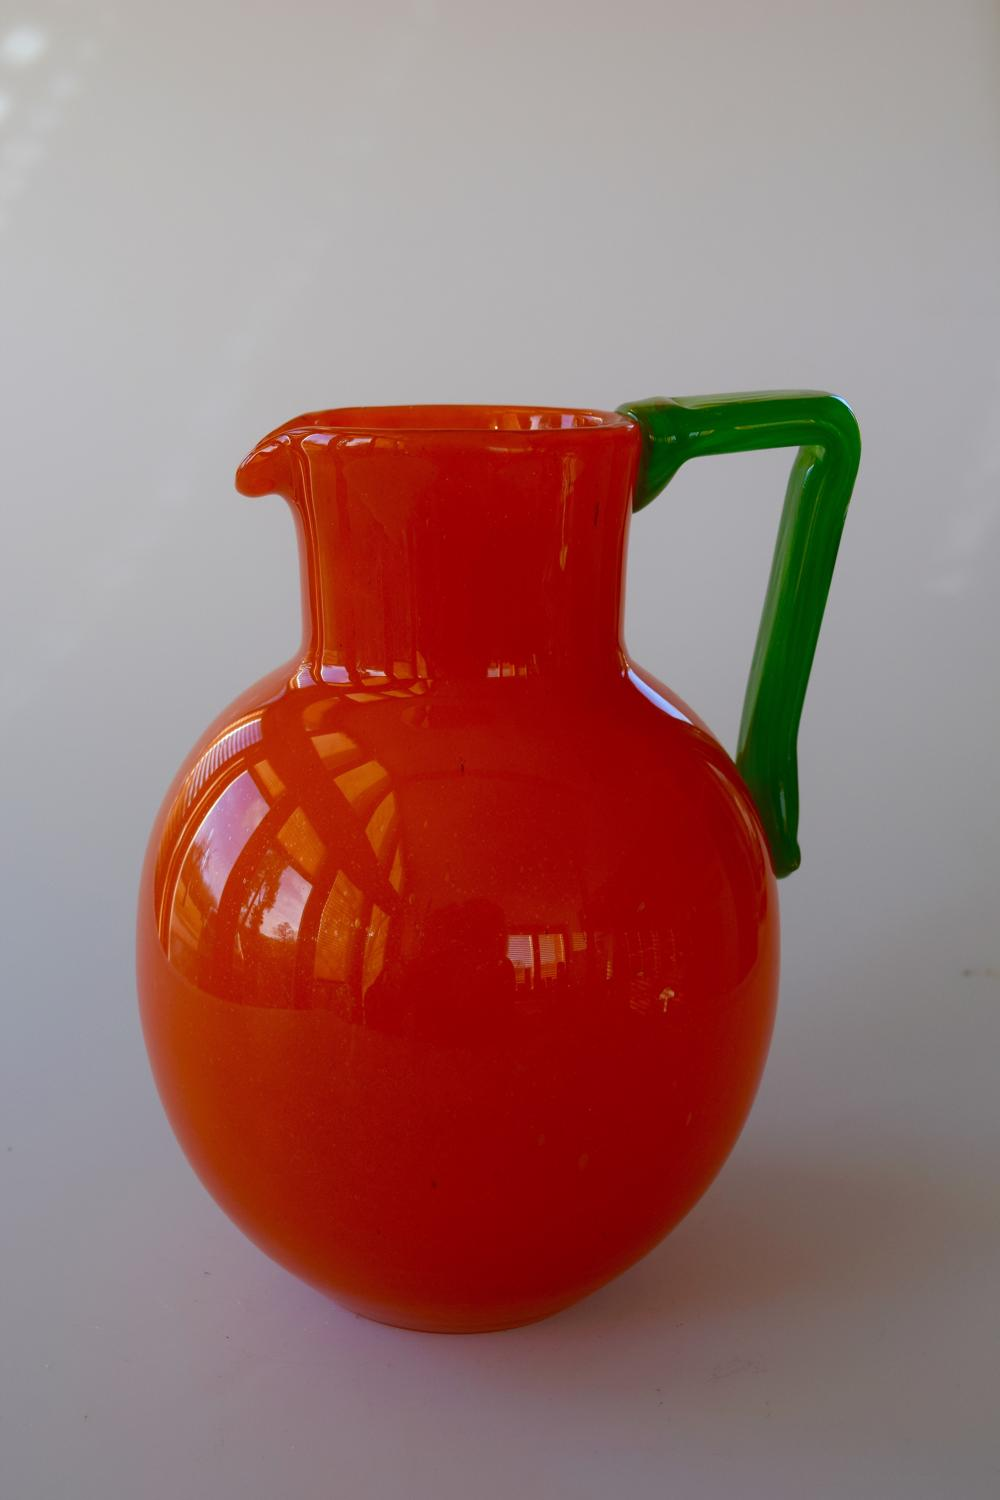 Orange jug by Schneider